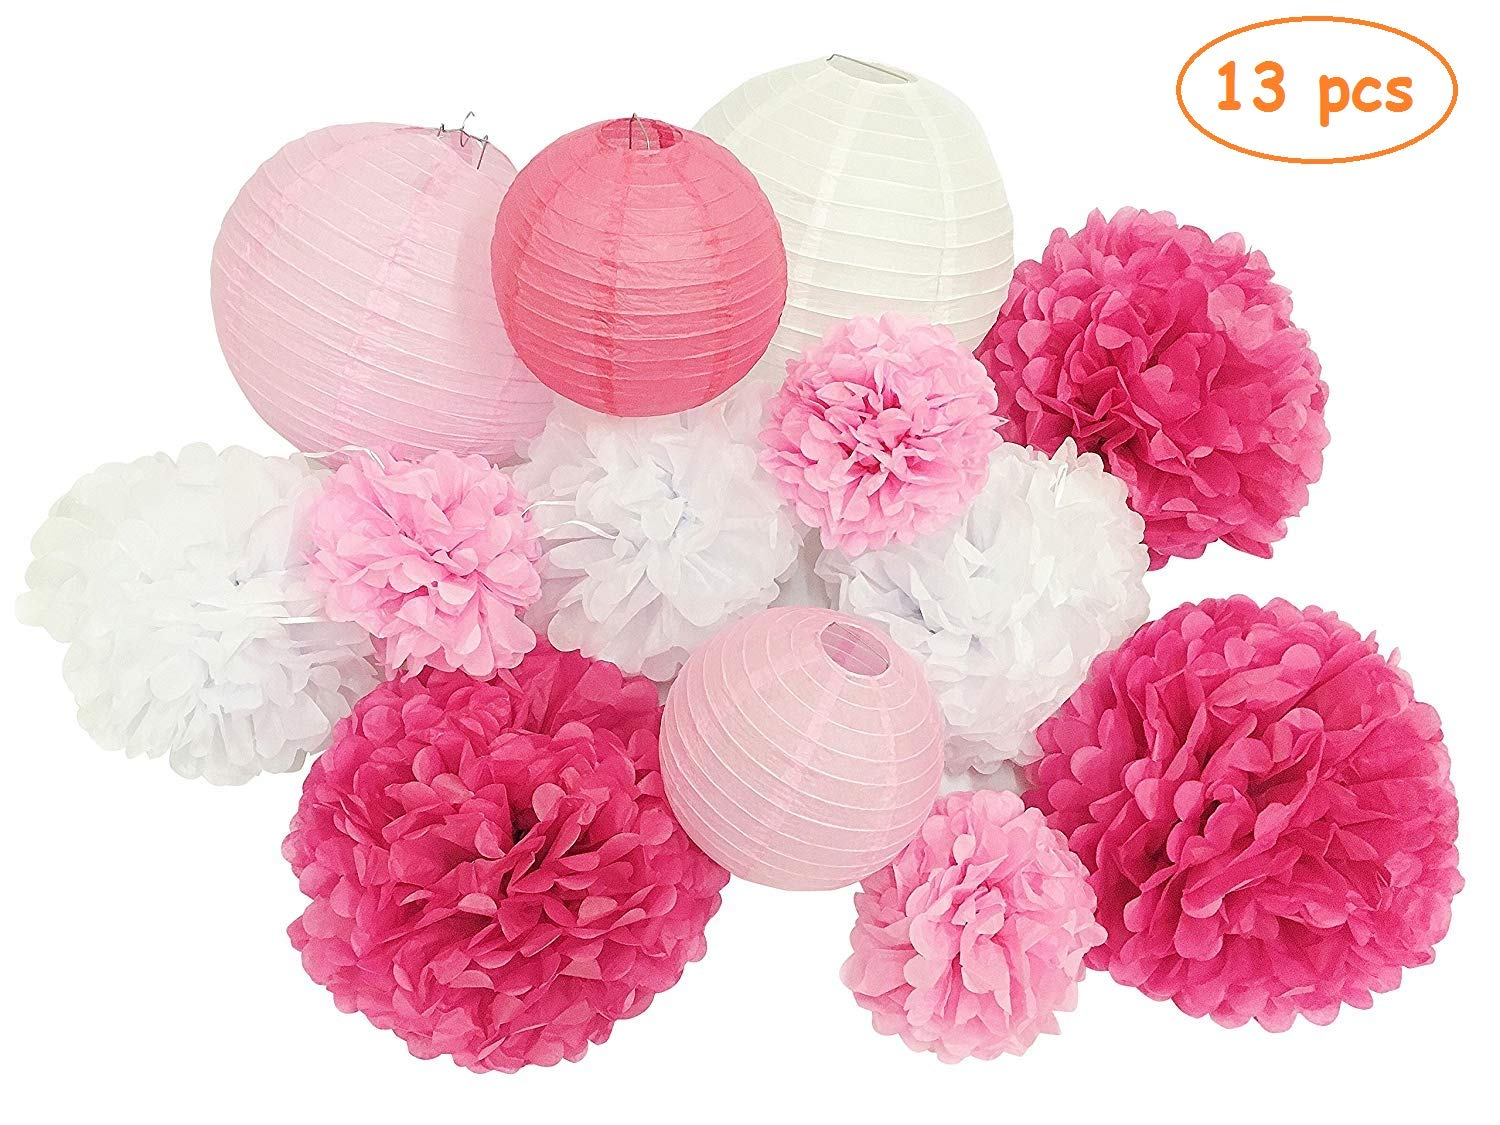 French//Parisian Birthday Party Ideas Pink Gold White Black Paris Party Decorations Tissue Paper Pom Pom Honeycomb Ball//Paper Lantern for Girls Birthday Decorations Ooh La La Baby Shower Decorations Furuix